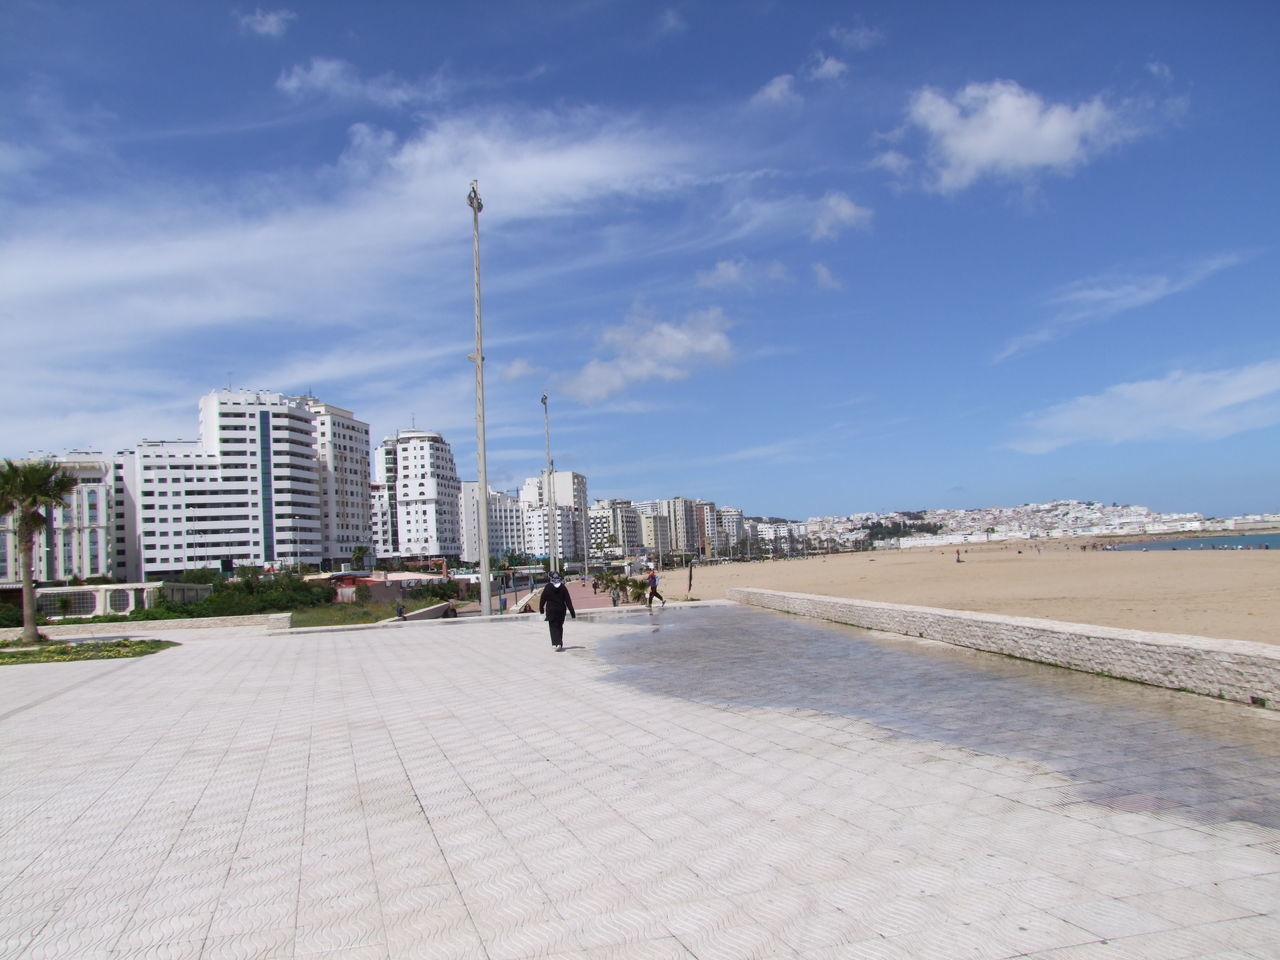 Tangier City Promenade Architecture Beach Blue Sky White Clouds City Composition Distant View Famous Place Modern Architecture Morocco No People Outdoor Photography Promenade Sand Sea Sunlight Tangier Tangier City Tourism Destination Tourist Attraction  Tourist Destination Travel Destinations Urban Skyline